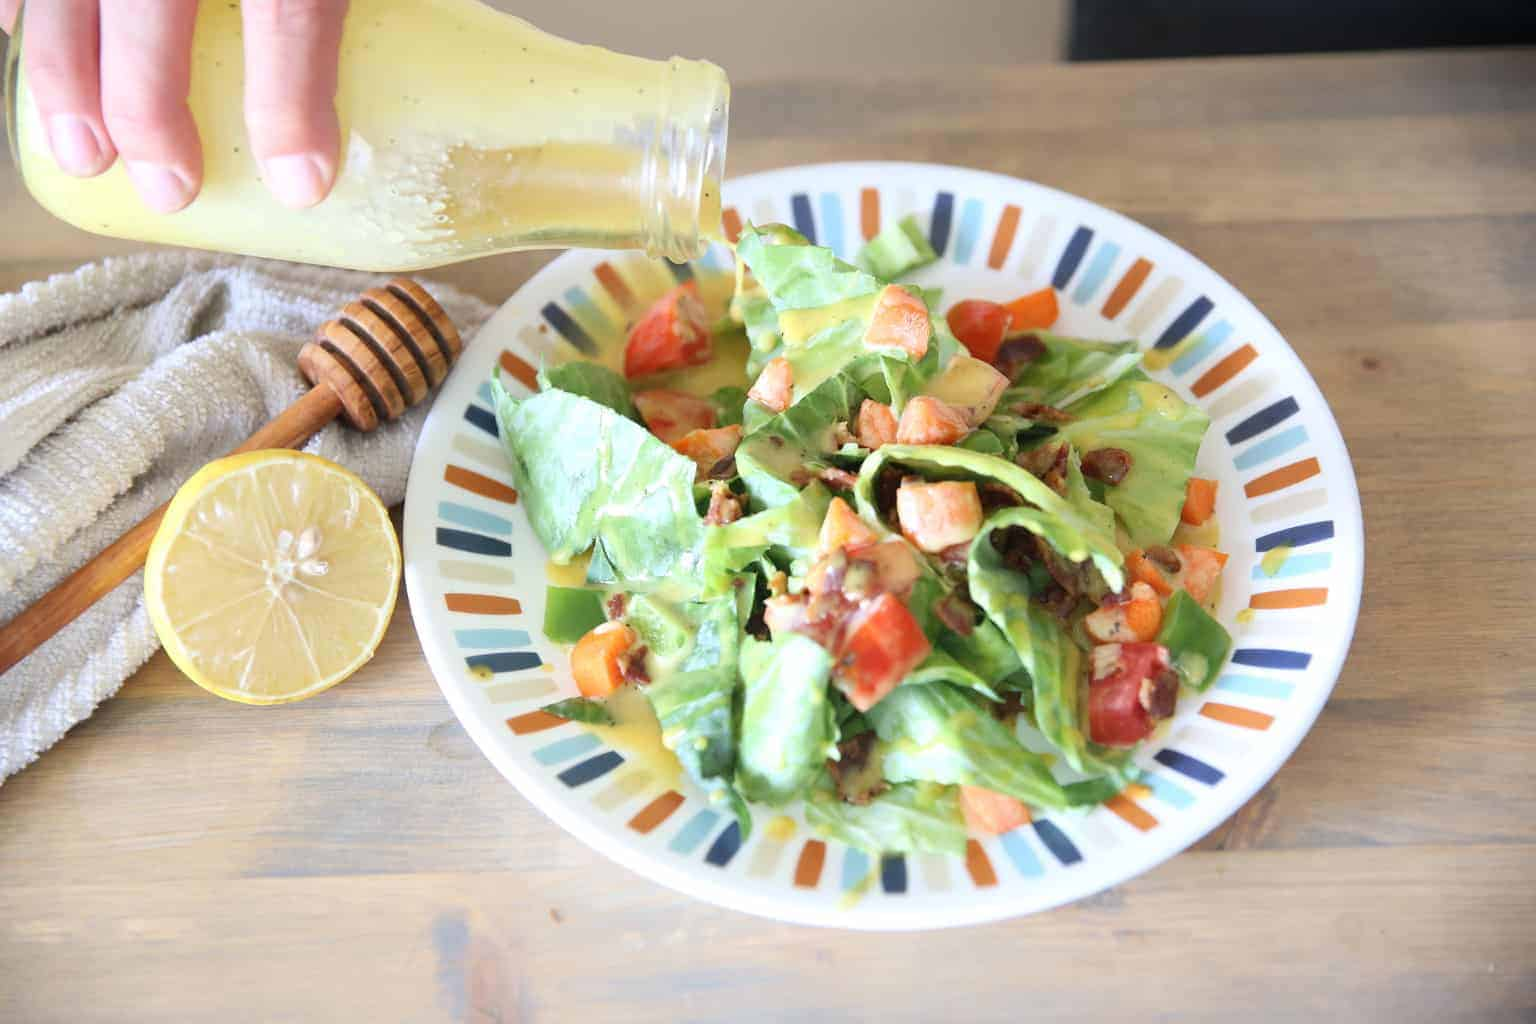 pouring homemade lemon honey mustard on salad from a glass jar